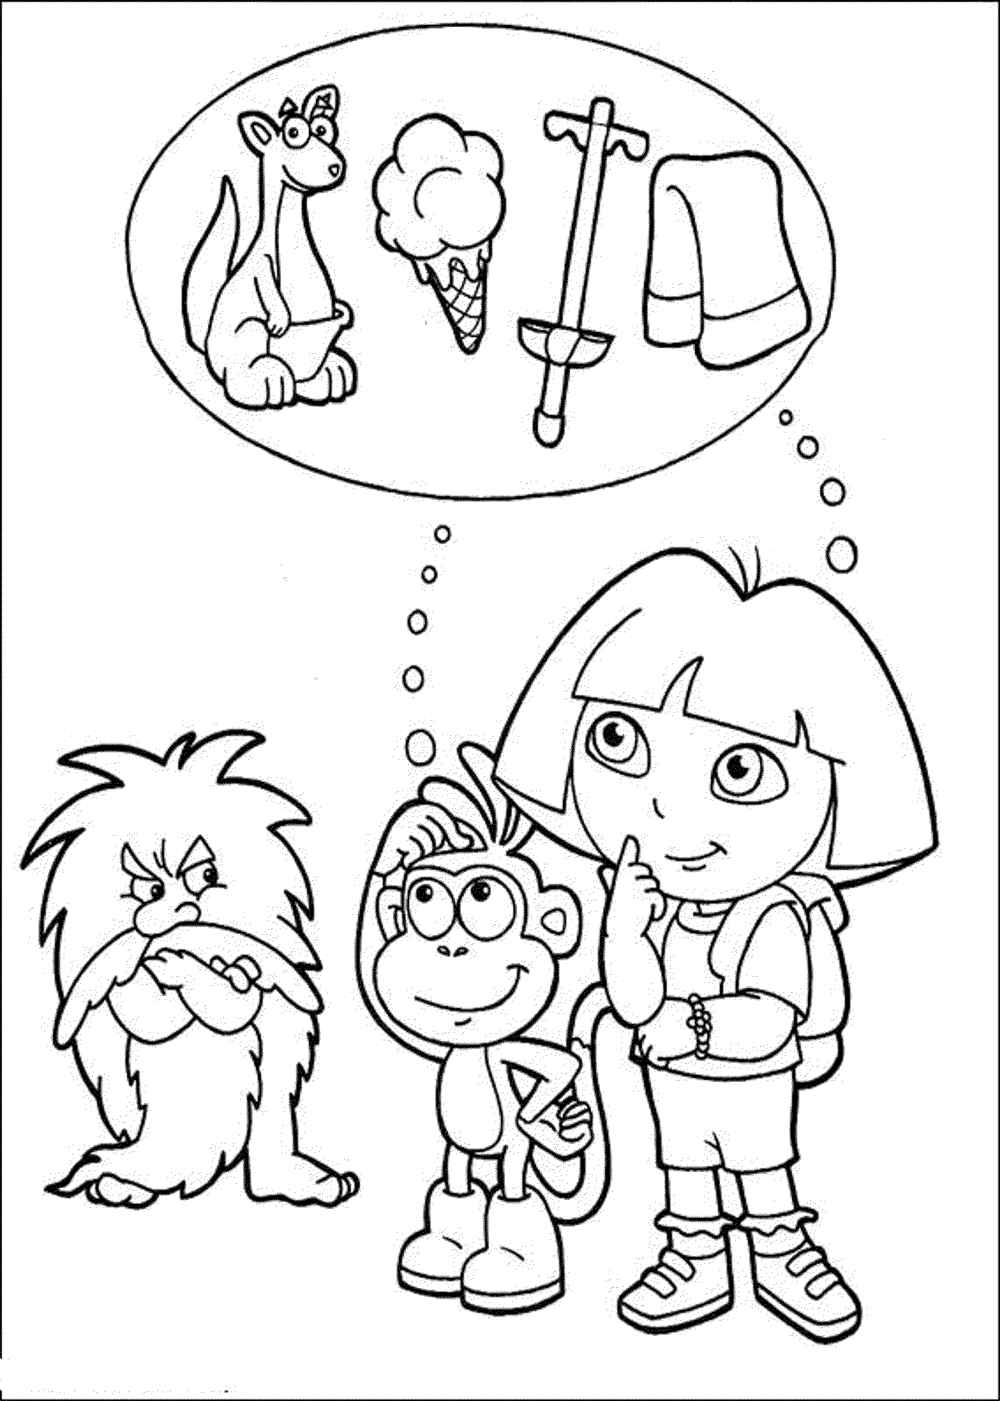 dora colouring pictures print download dora coloring pages to learn new things pictures colouring dora 1 1